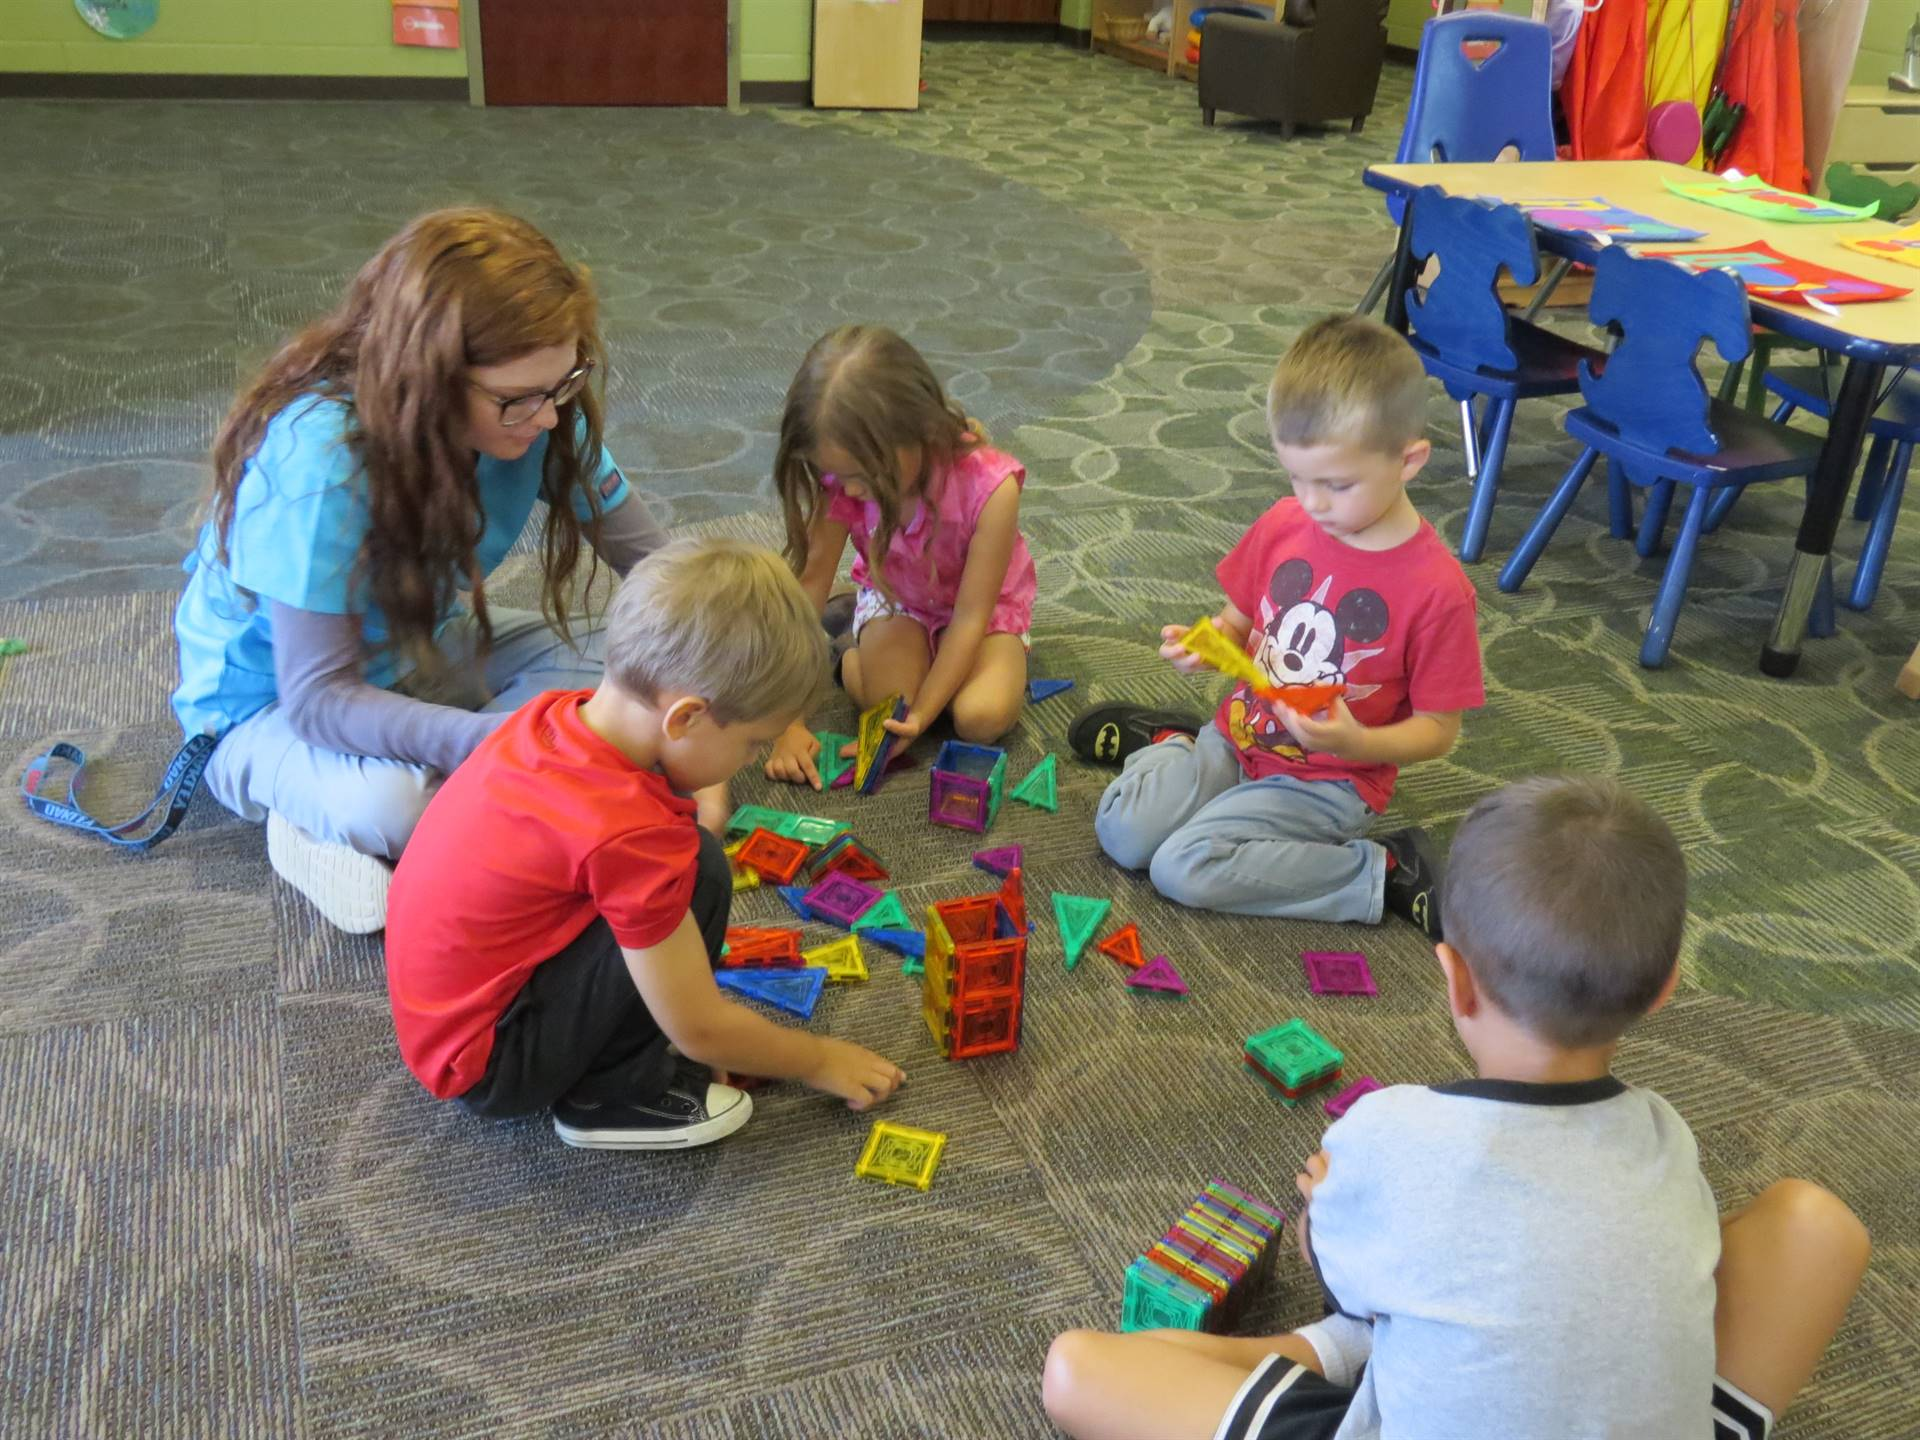 Preschoolers playing on the floor with blocks